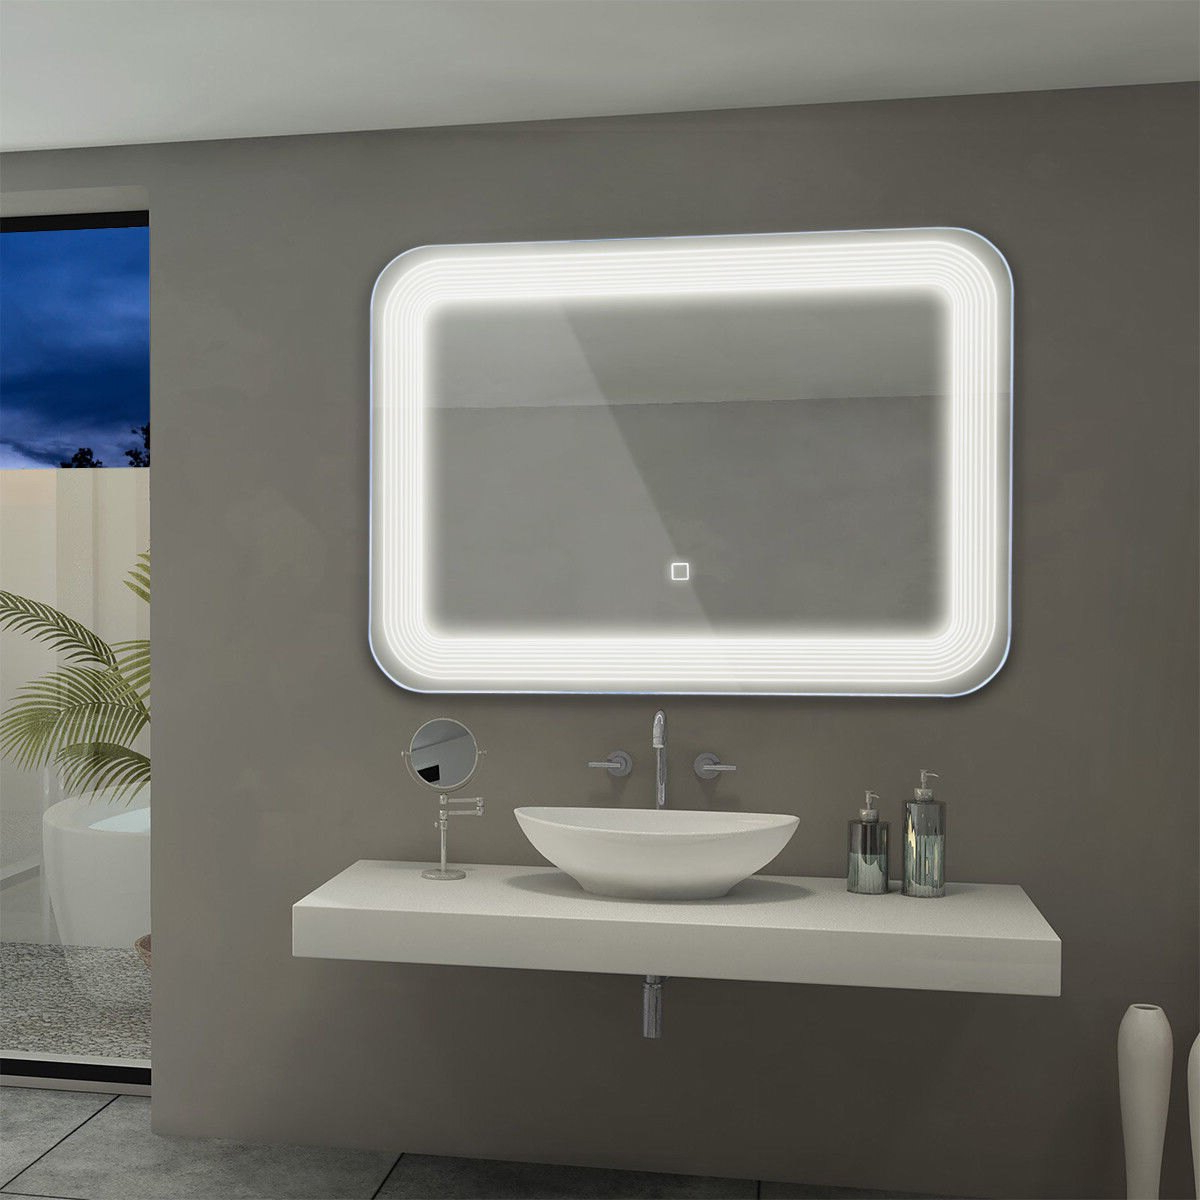 Fashionable Costway Led Wall Mount Mirror Bathroom Vanity Makeup Illuminated Mirror  W/touch Button Pertaining To Wall Mirror For Bathroom (Gallery 20 of 20)